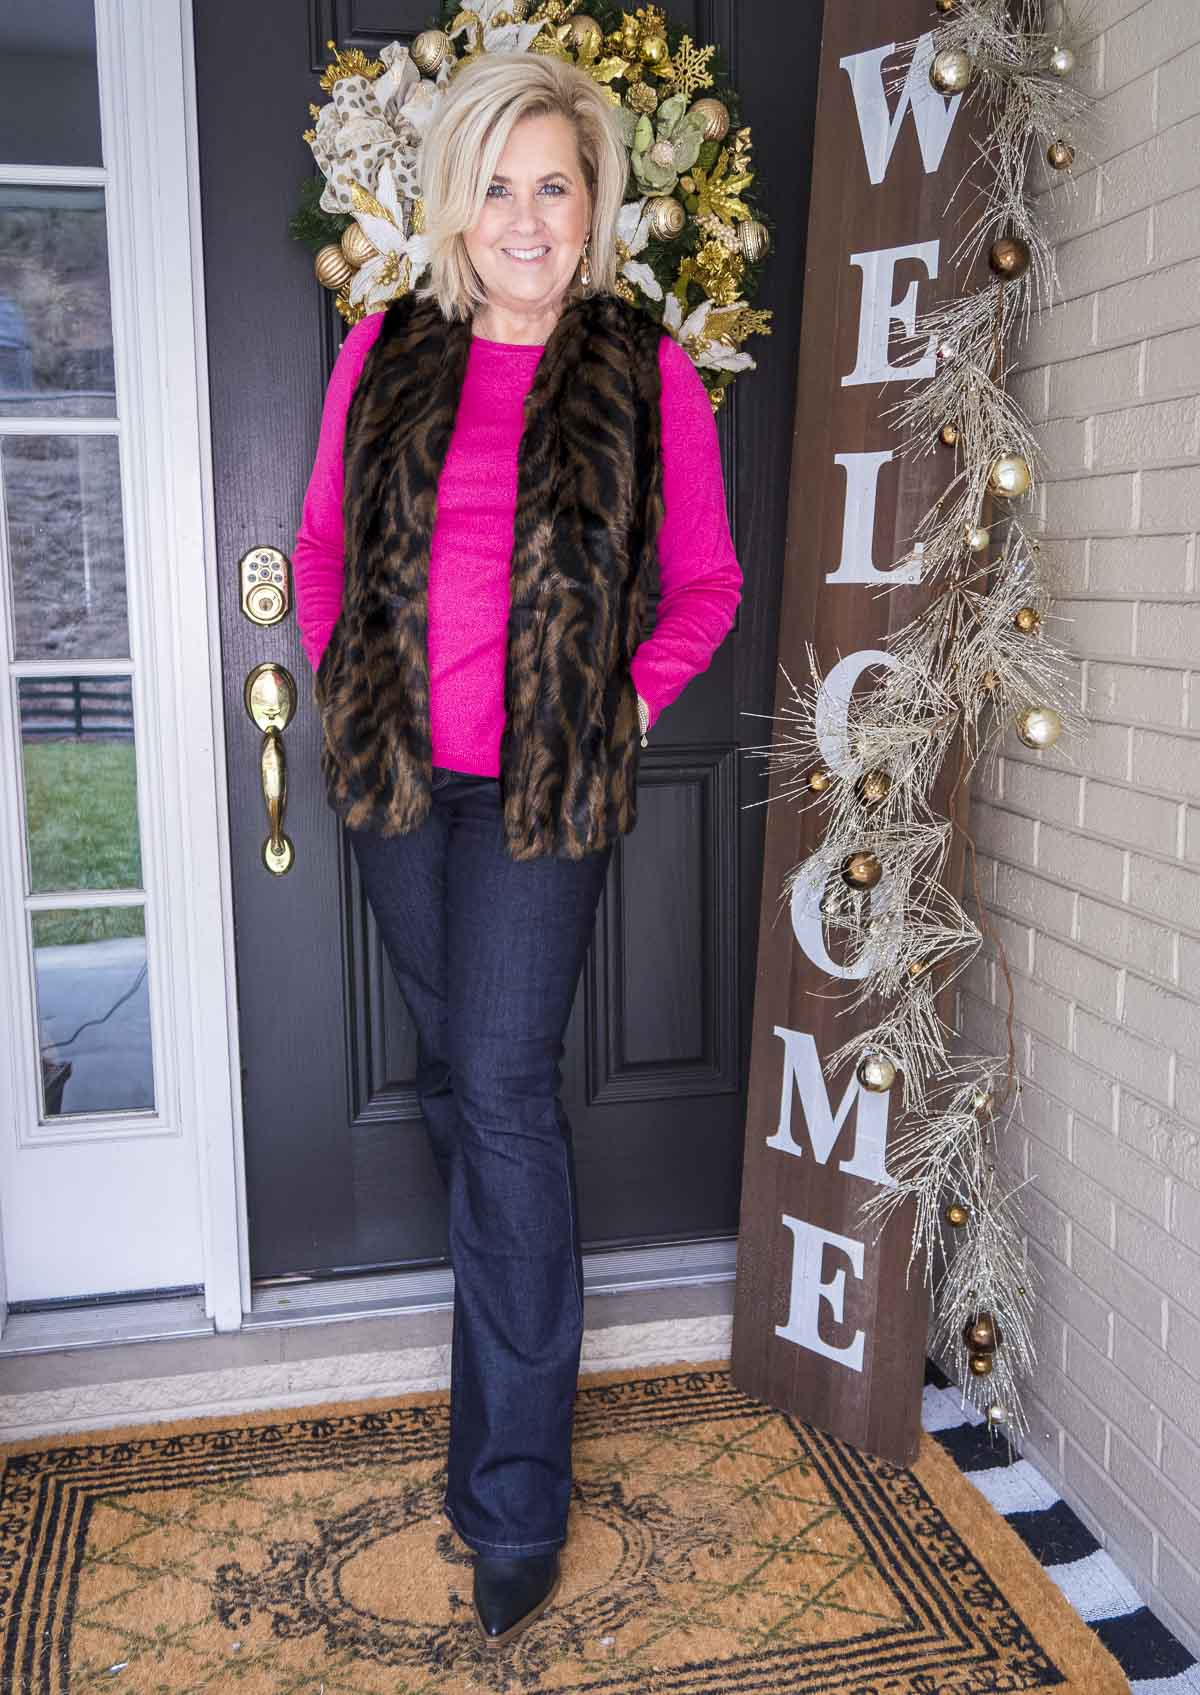 Over 40 Fashion Blogger 50 Is Not Old is wearing a bright pink sweater with a tiger print faux fur vest, flare jeans, and black boots